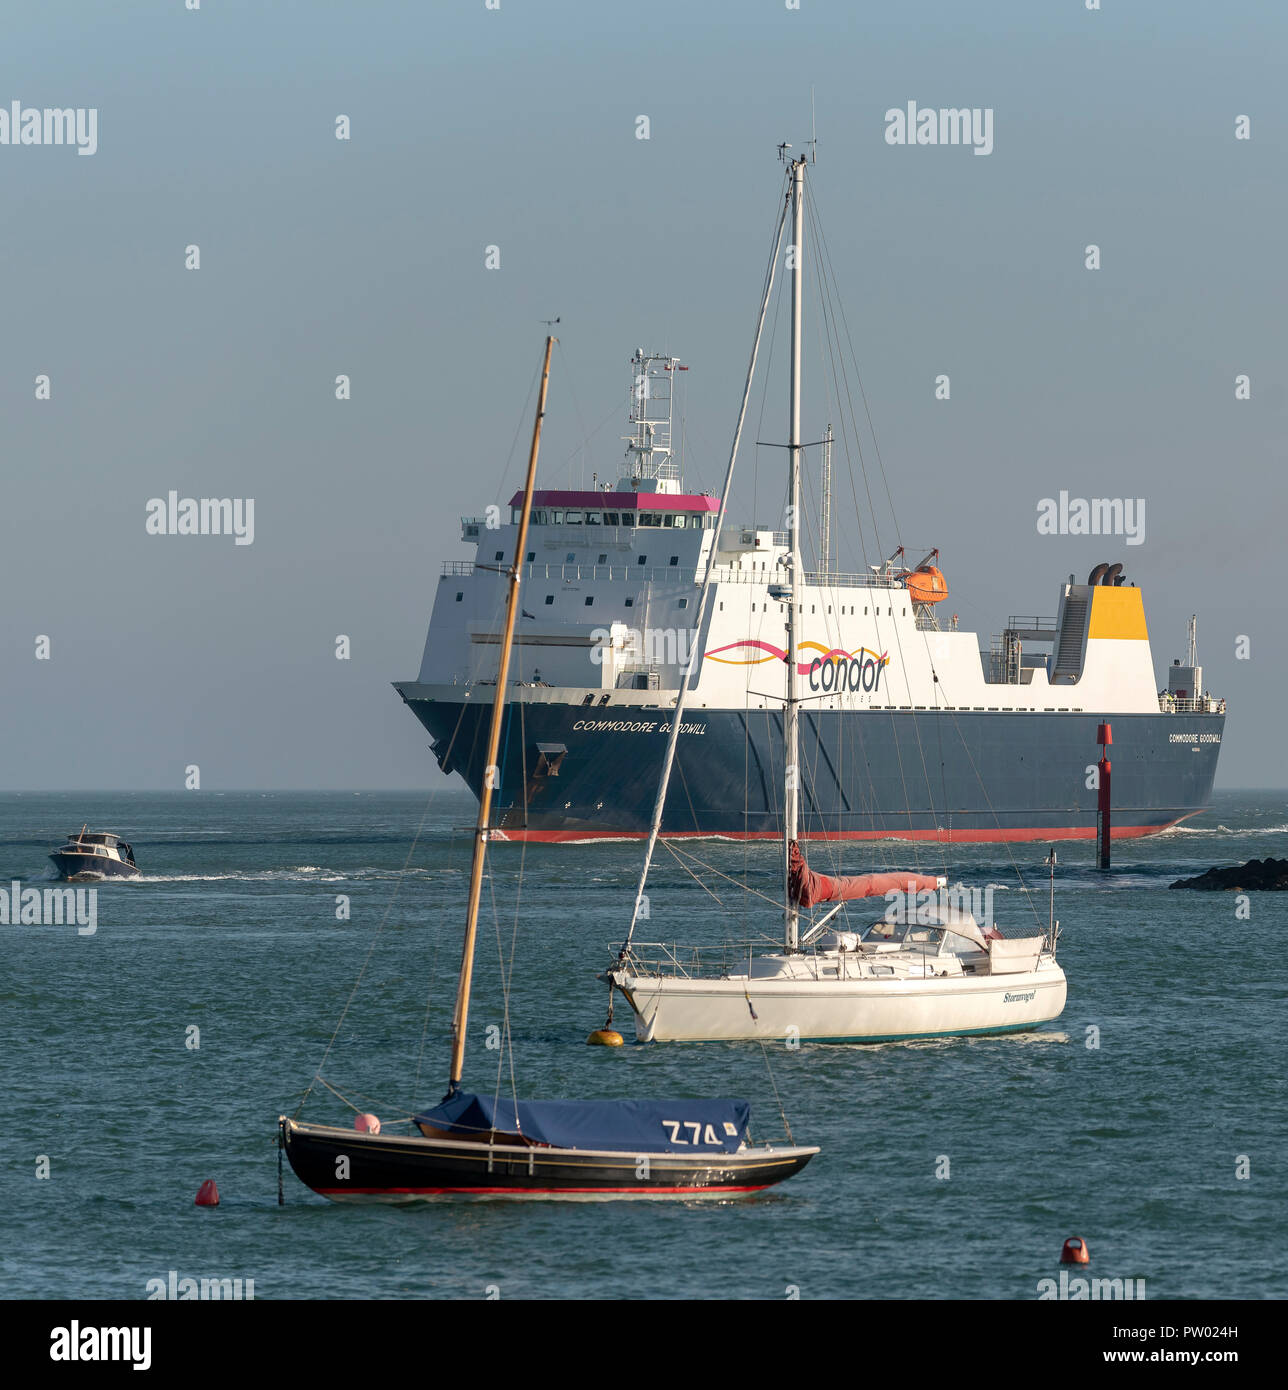 Commodore Goodwill a cross channel commercial ship entering Portsmouth Harbour, England UK. - Stock Image